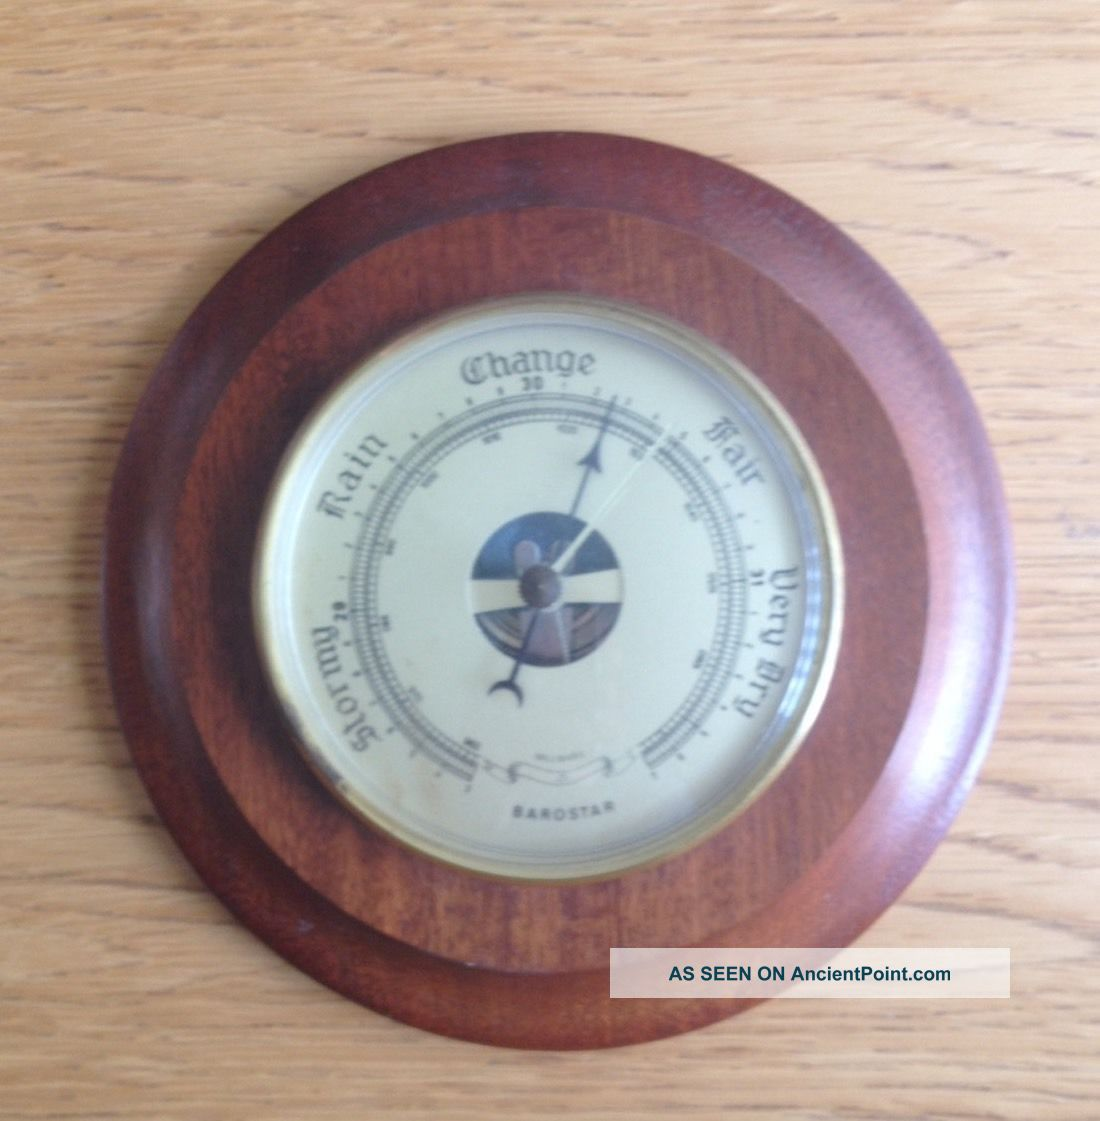 Barostar Barometer Other Antique Science Equip photo